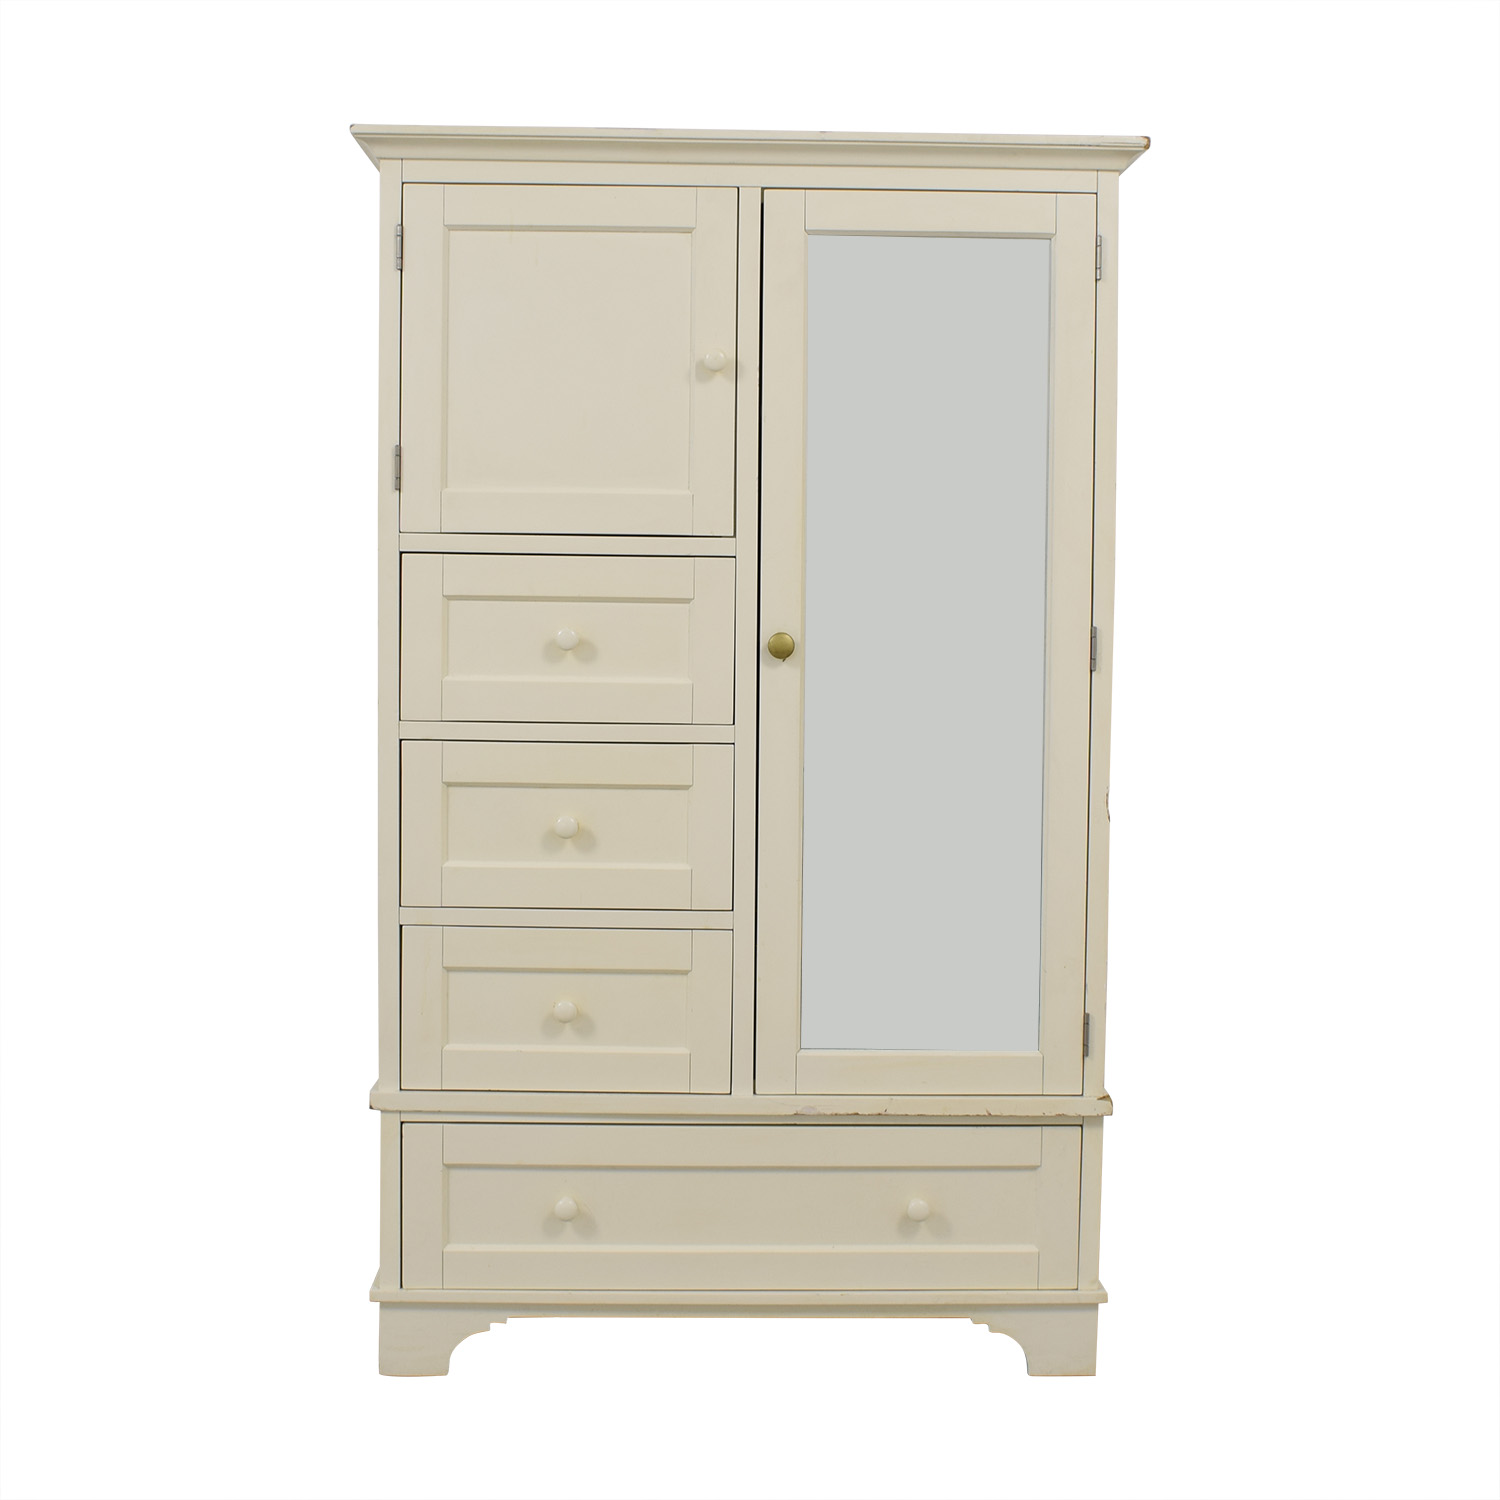 buy Pottery Barn Cynthia Chiffonier Armoire in White Pottery Barn